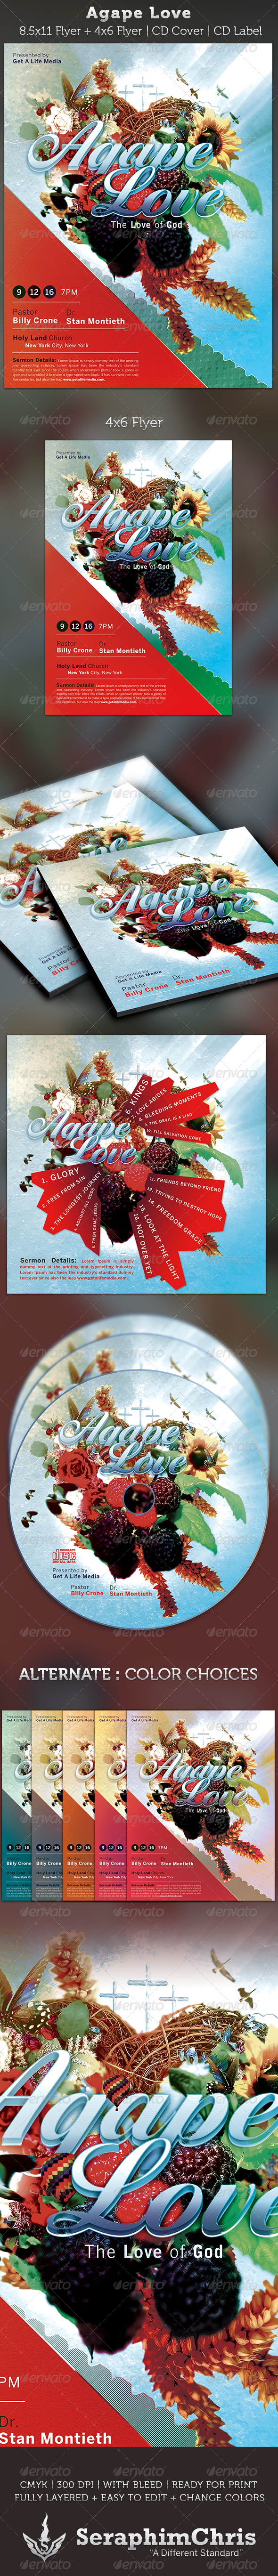 Agape Love Church Flyer and CD Art Template - Church Flyers